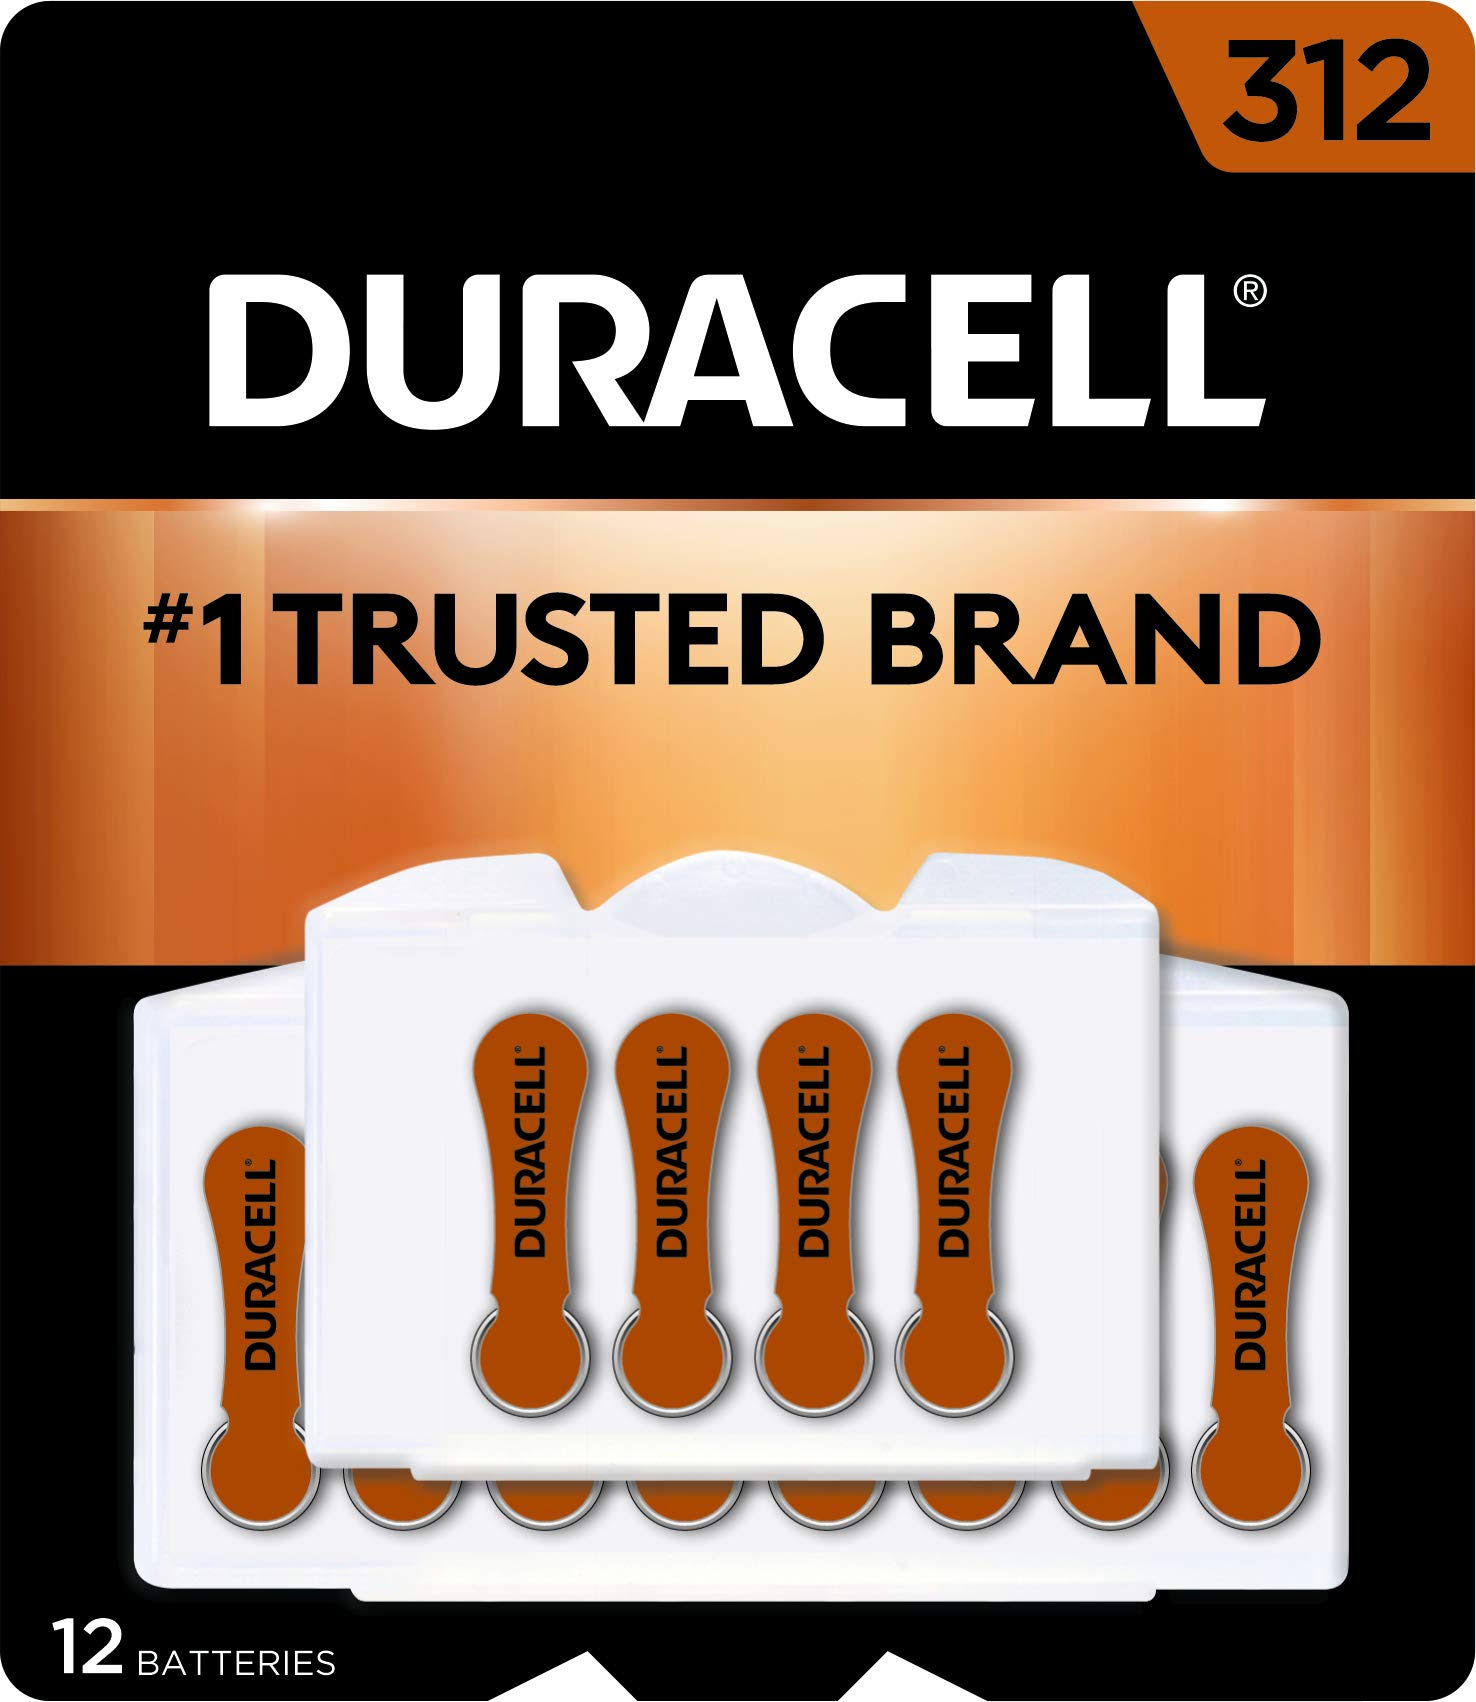 Duracell EasyTab Hearing Aid Batteries - Size 312, 12pcs